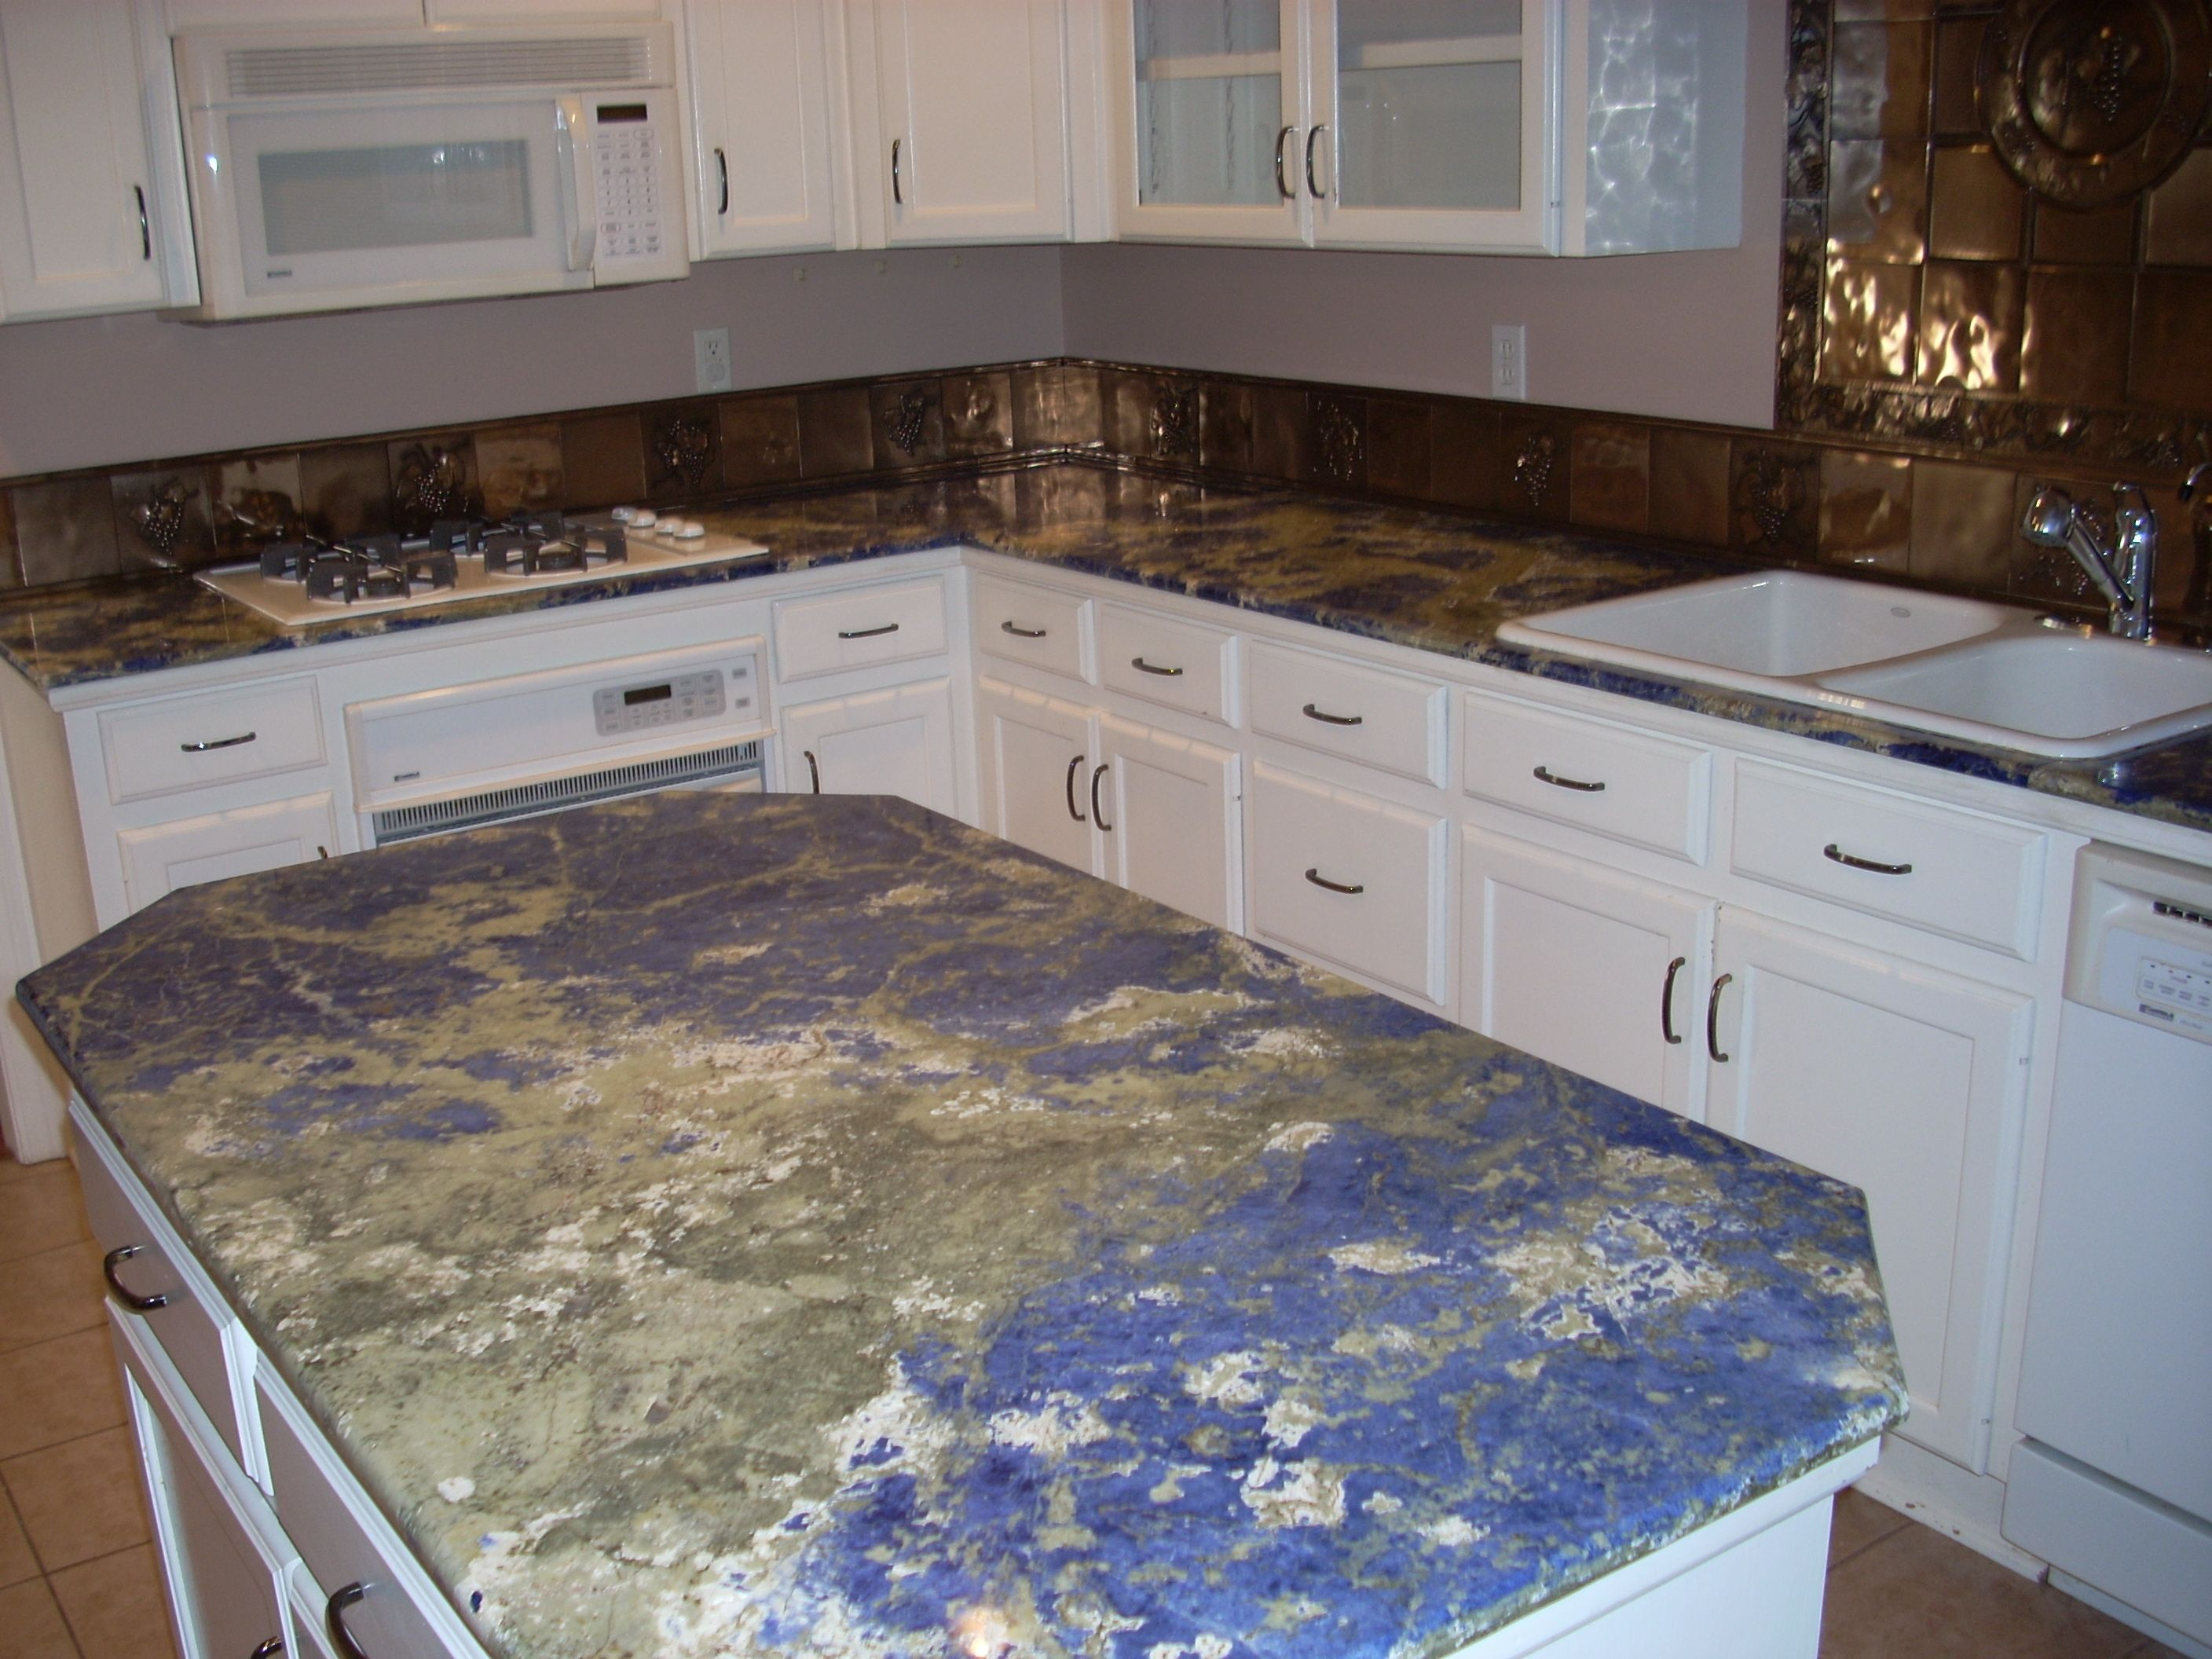 Sodalite Blue Granite Countertops Amazing Texture Variation Looks Blue Granite Countertops Blue Kitchen Countertops Countertops